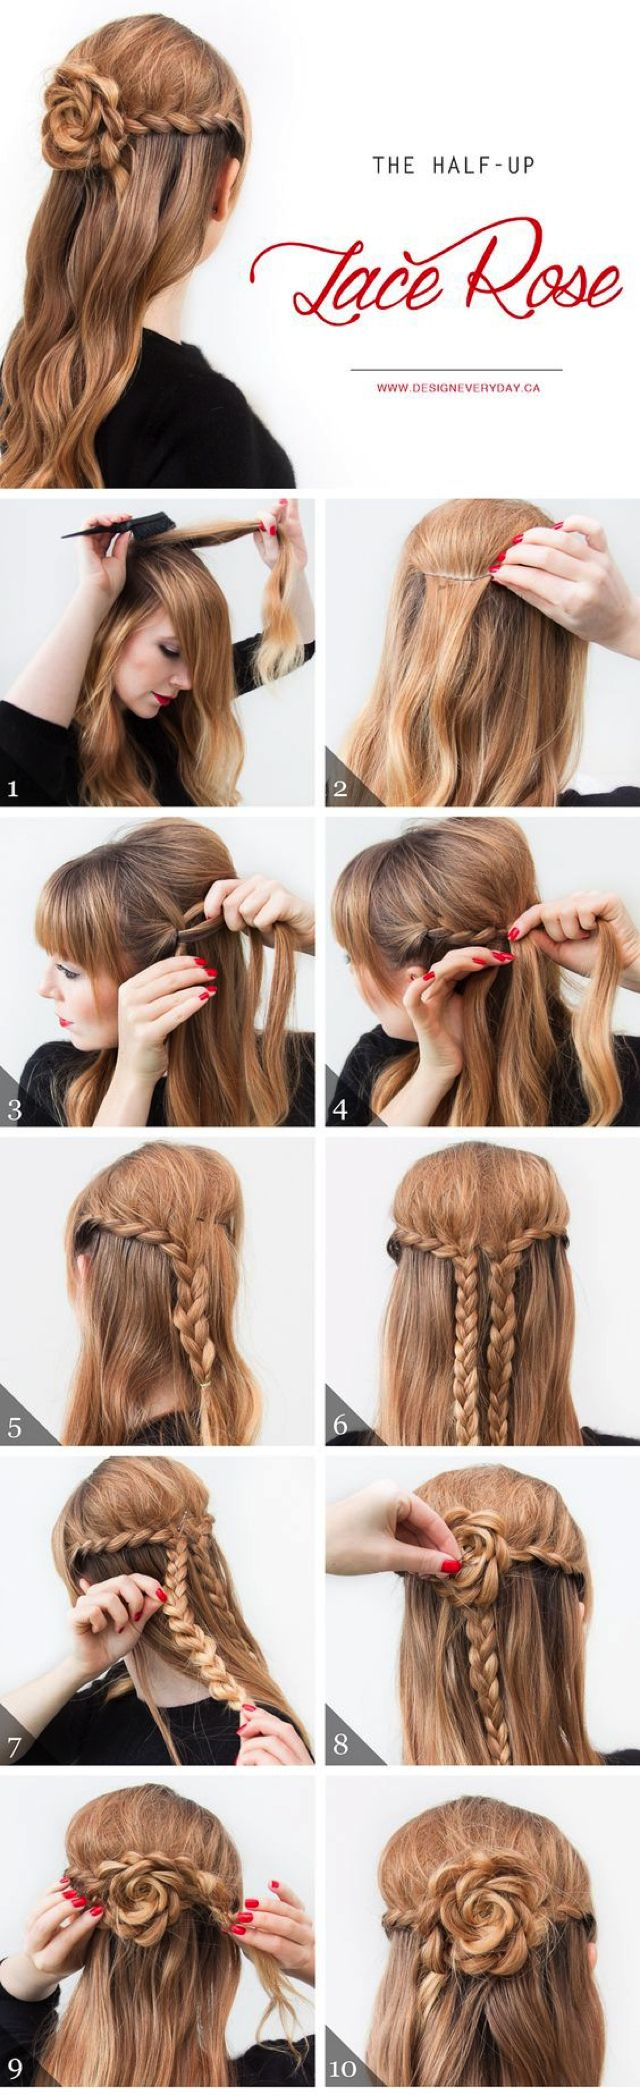 nice Easy Hairstyles Ideas The Rose braid (Video) , The rose braid looks way more complicated than it actually is. If you arelooking for some hair inspiration this hairstyle is a cool alternative to t... ,  #Braids #Bridalhaistyles #easyhairstyles #Instructionsforbraids #rosebraidinstructions #weddinghairstyles